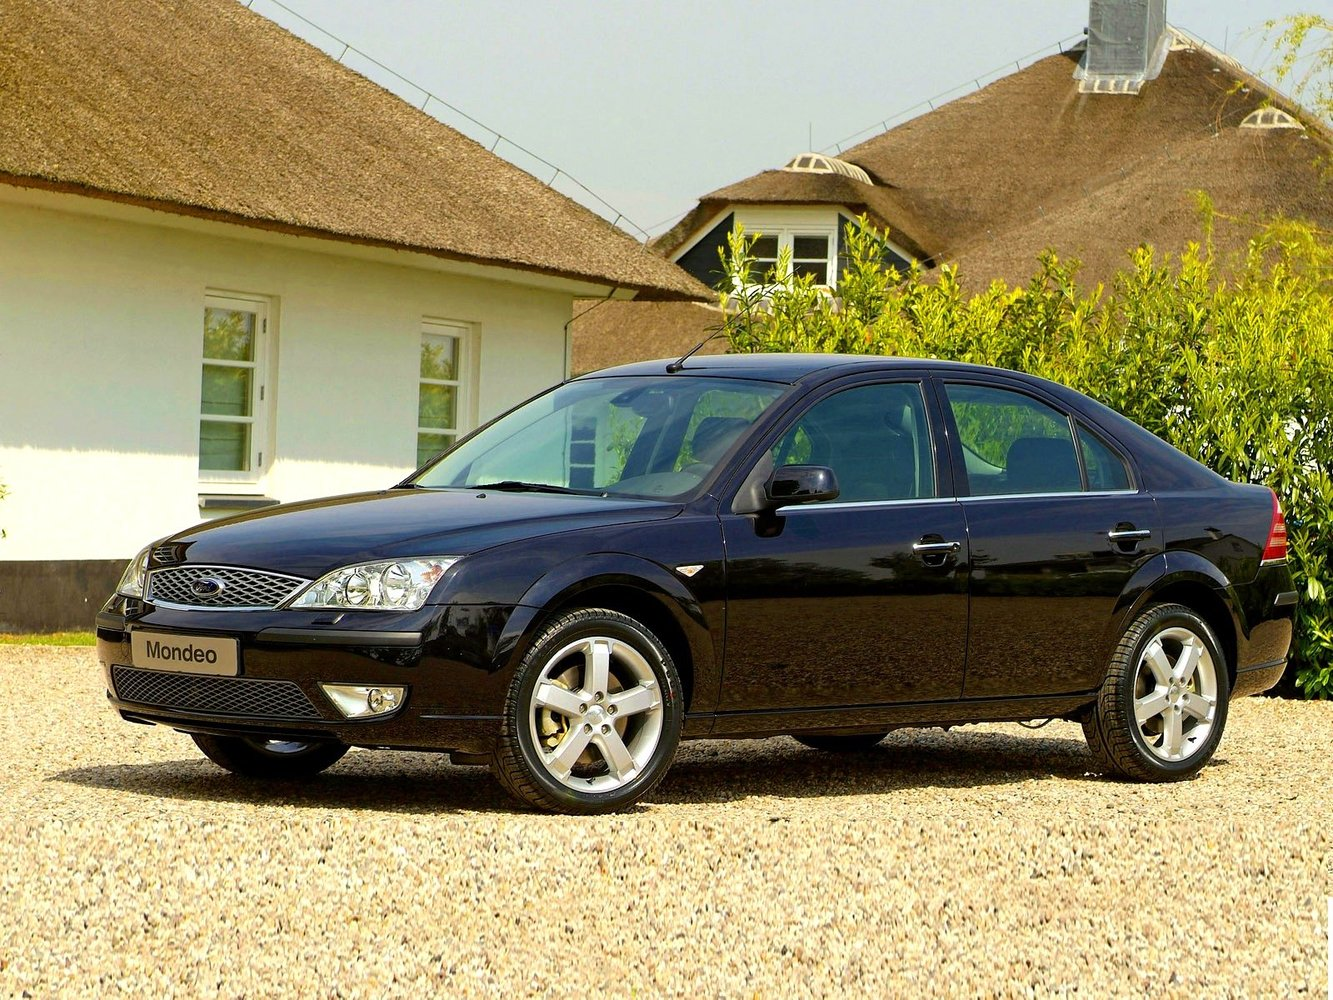 Ford Mondeo 2000 - 2003